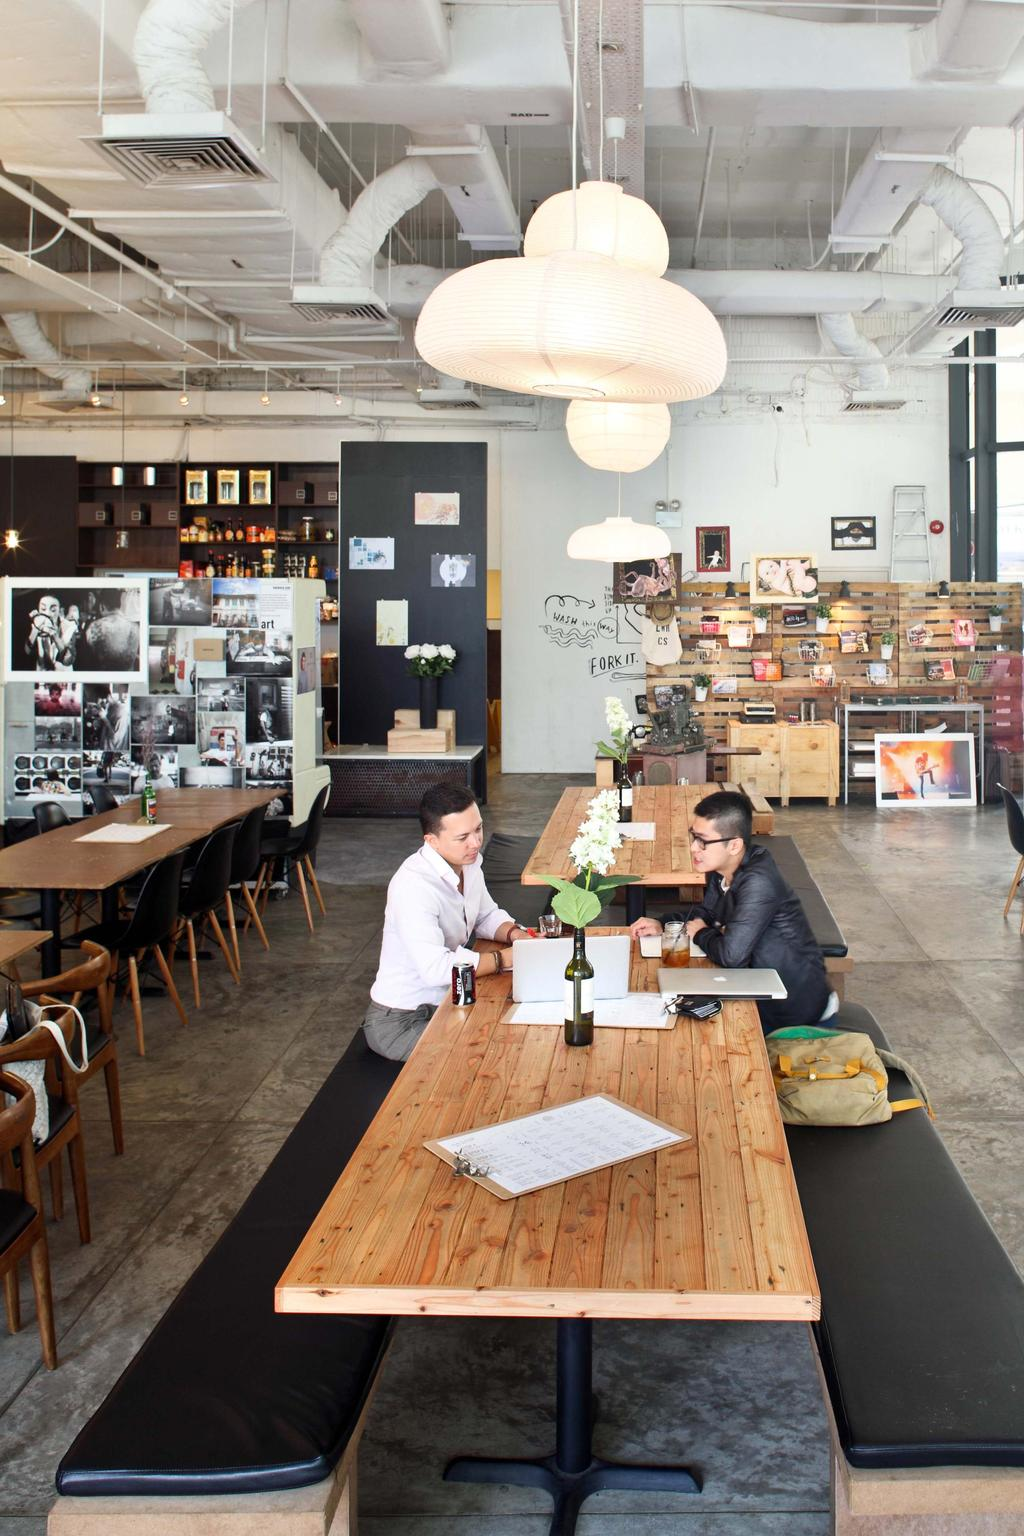 Lowercase, Commercial, Interior Designer, The Design Abode, Industrial, Bench, Wood Table, Dinig Tbales, Dining Chairs, Dining Ench, Shleing, Hanging Lights, Dining Light, Human, People, Person, Dining Table, Furniture, Table, Worker, Cafe, Restaurant, Chair